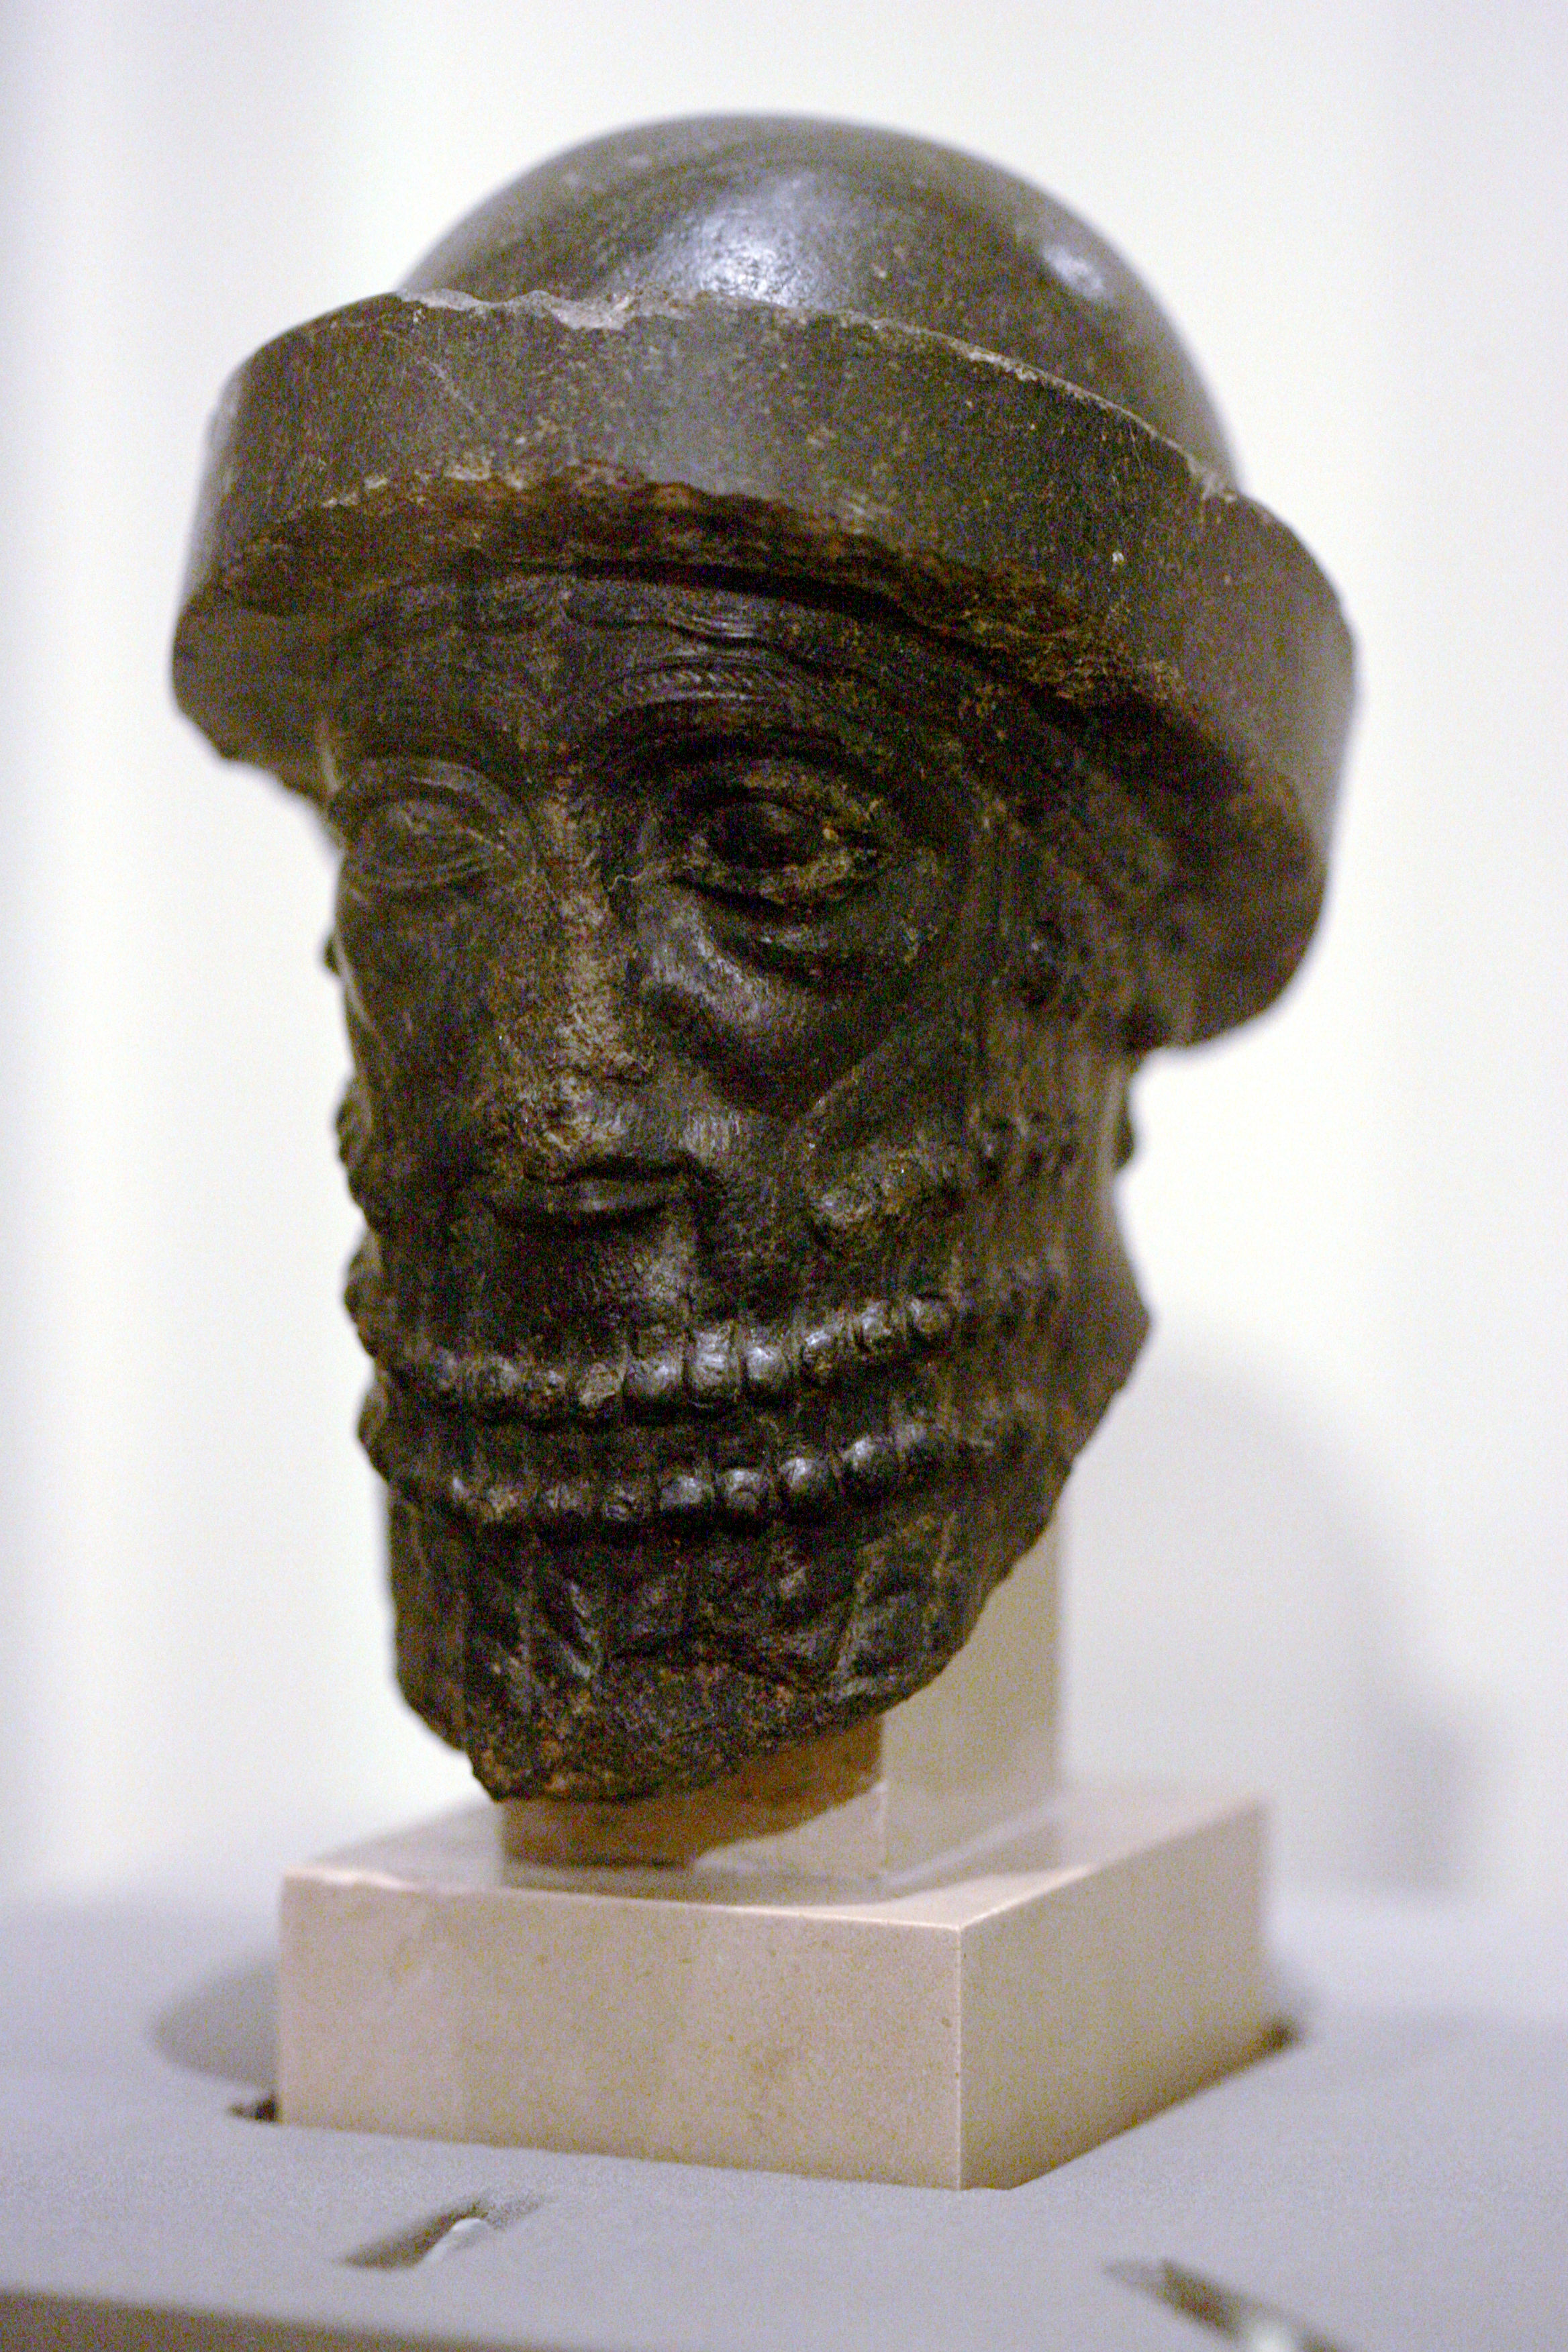 A stone statue depiction of King Hammurabi.